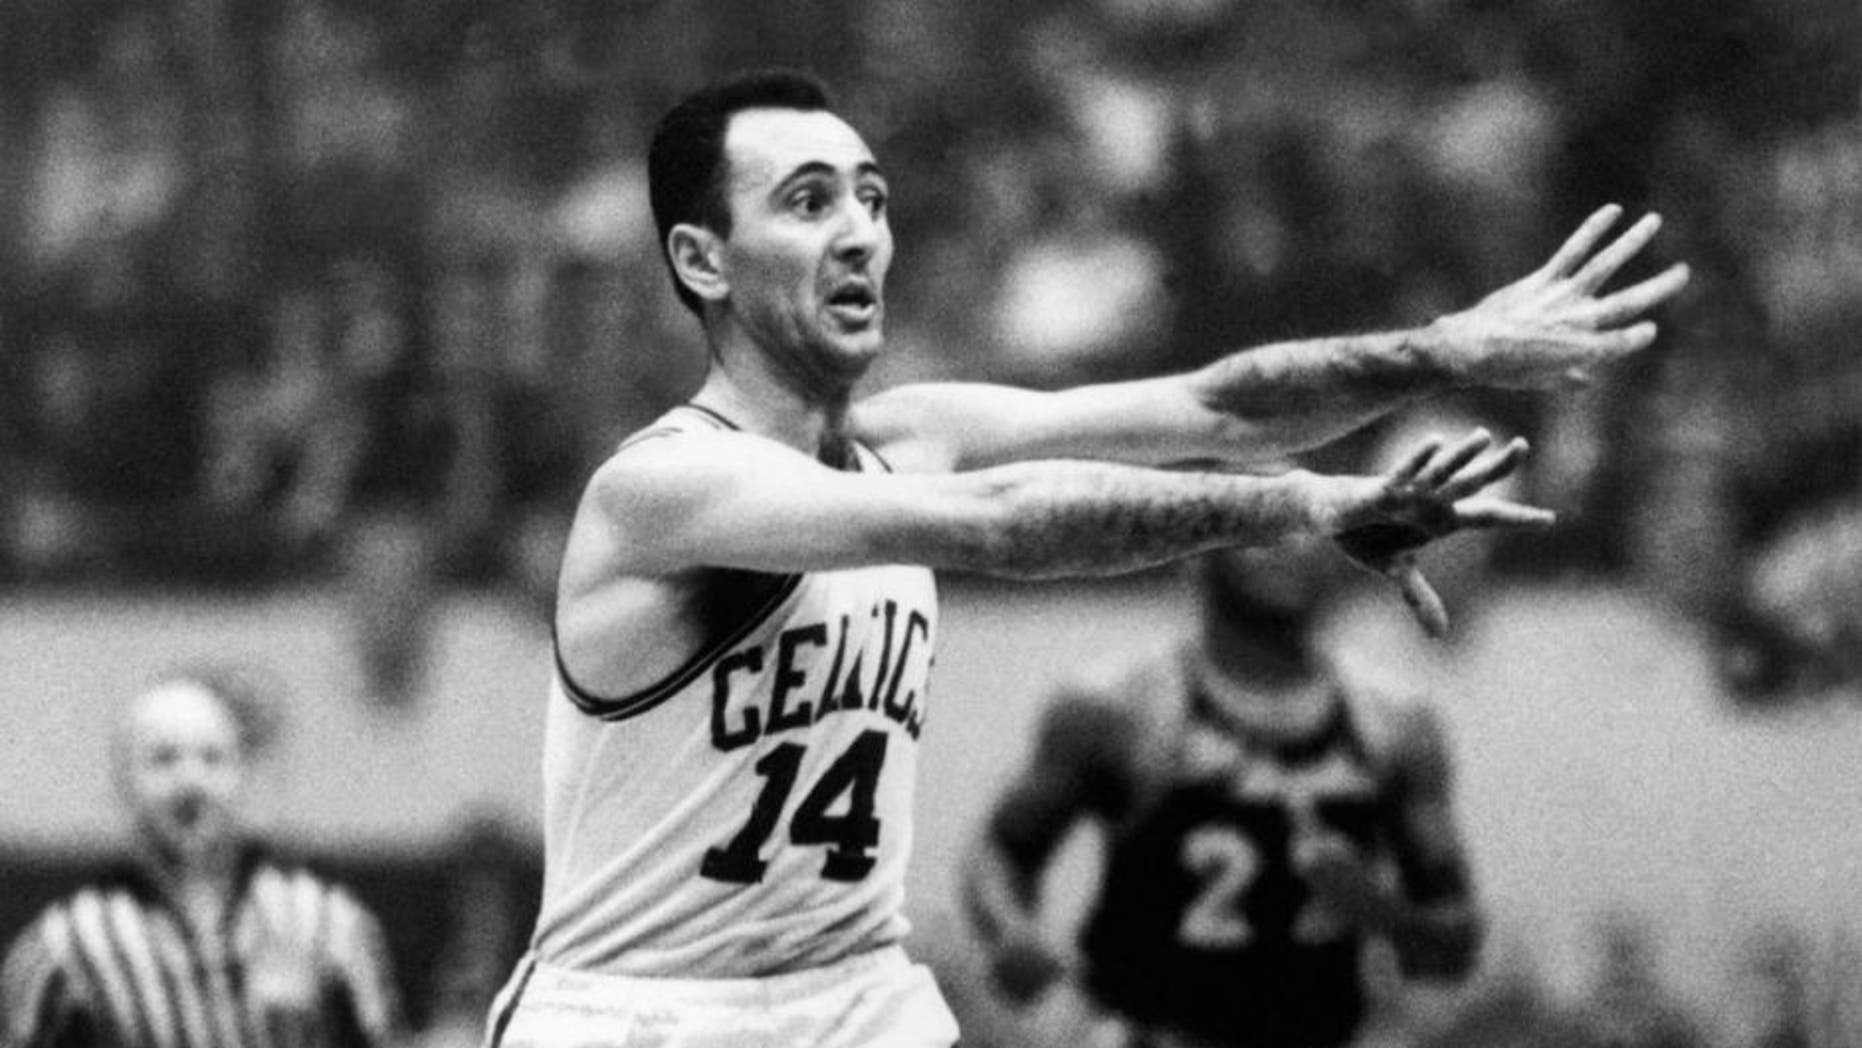 BOSTON,MA -1960: Bob Cousy #14 of the Boston Celtics throws a pass at the Boston Garden in Boston, Massachusetts on 1960. NOTE TO USER: User expressly acknowledges that, by downloading and or using this photograph, User is consenting to the terms and conditions of the Getty Images License agreement. Mandatory Copyright Notice: Copyright 2006 NBAE (Photo by: NBA Photo Library/NBAE via Getty Images)